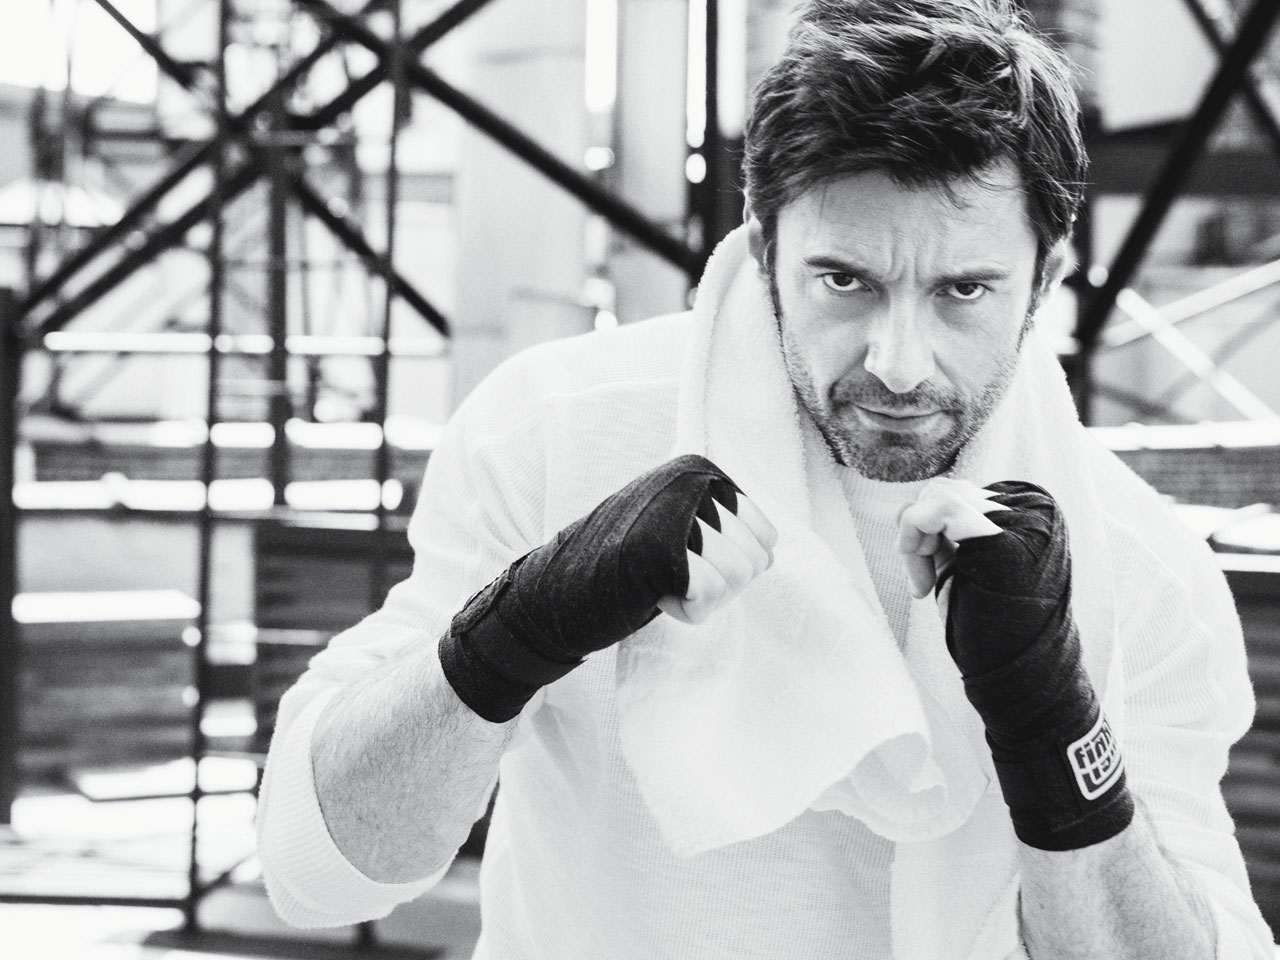 How to get jacked like Hugh Jackman in 'X-Men'